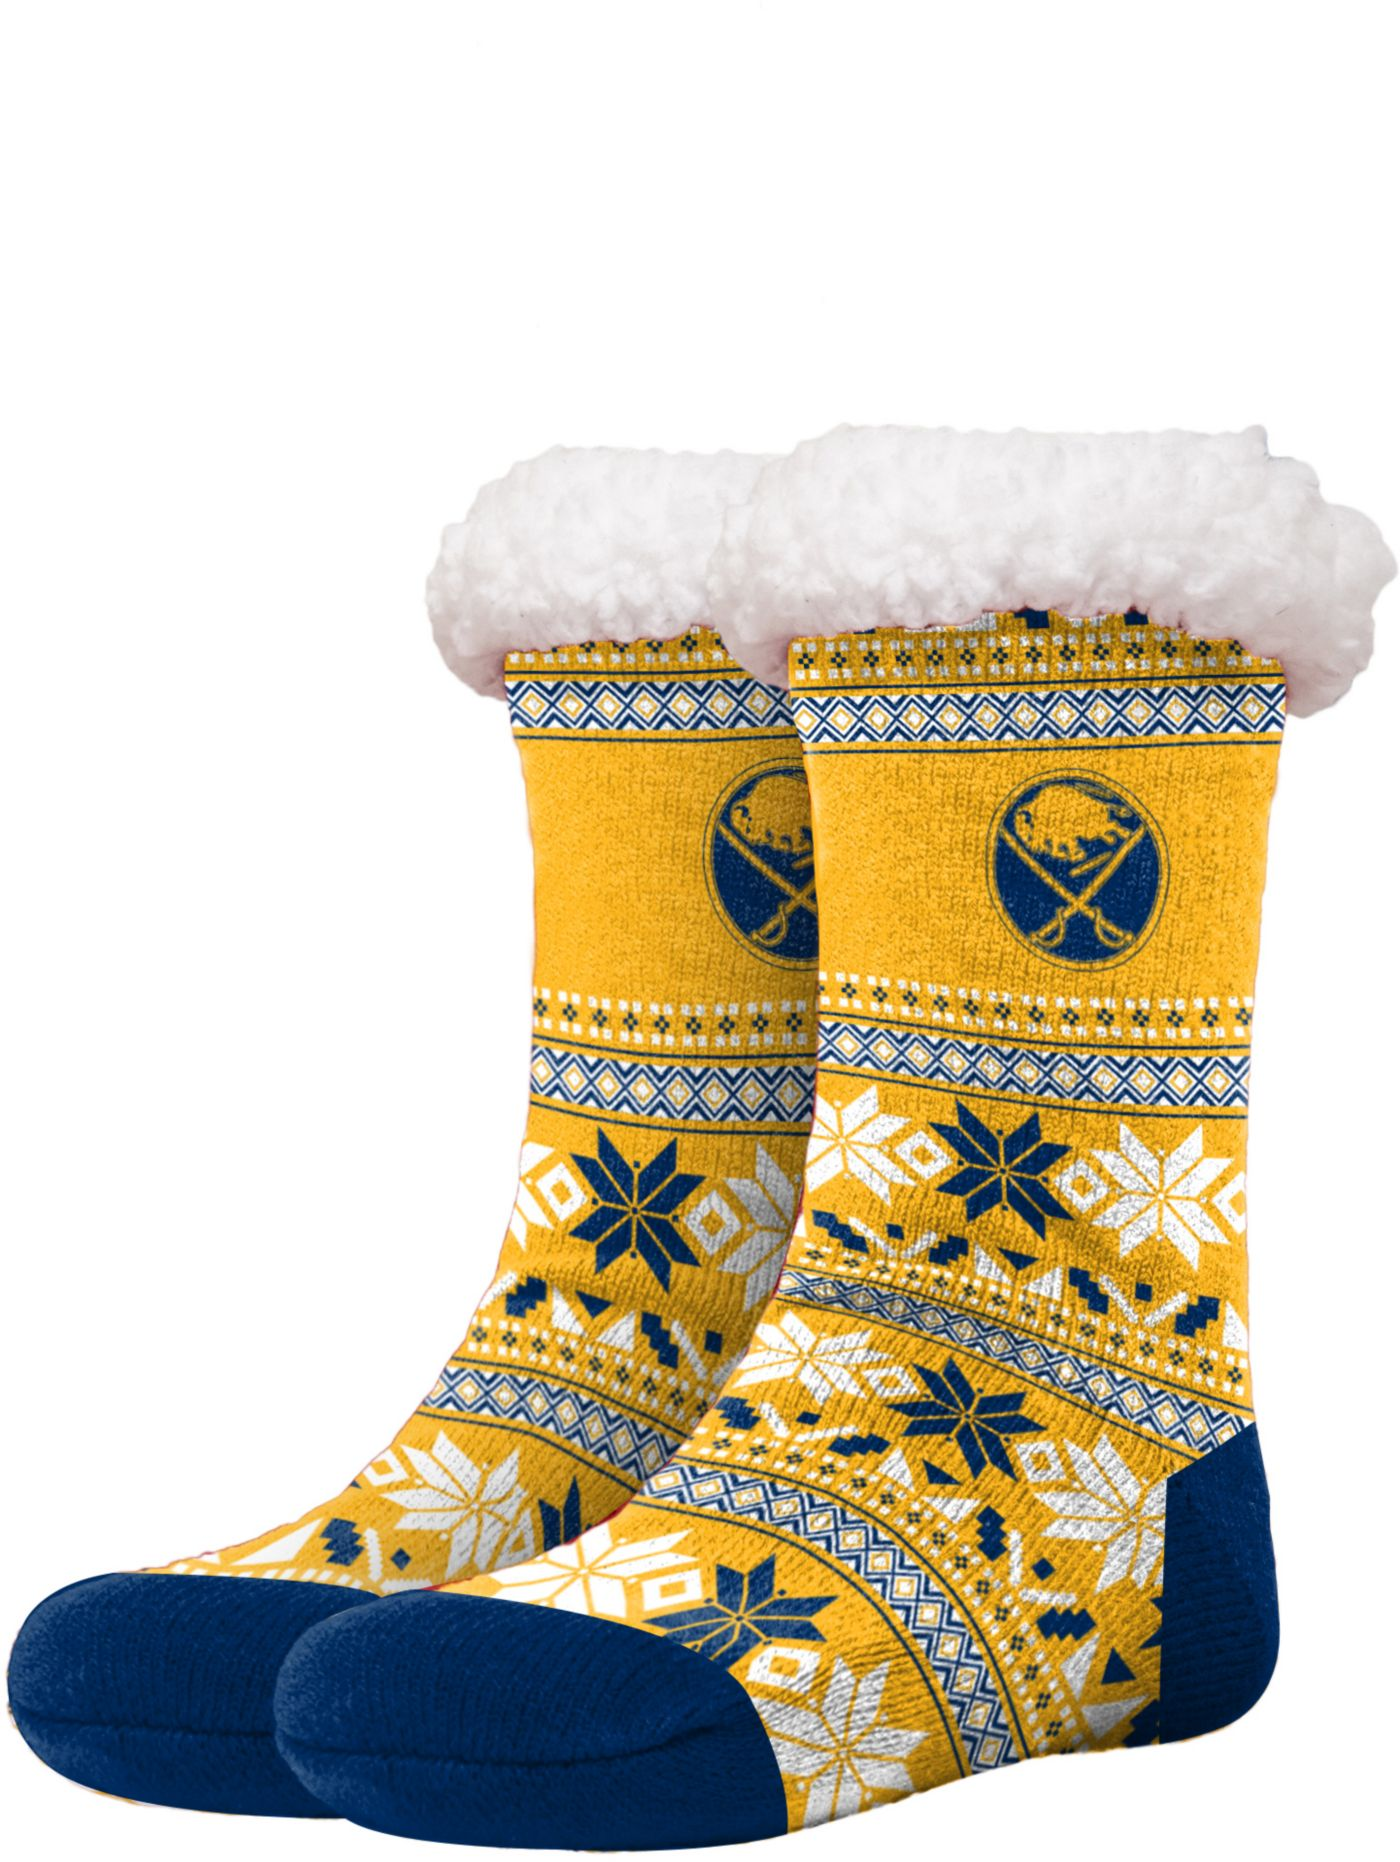 FOCO Buffalo Sabres Footy Slippers